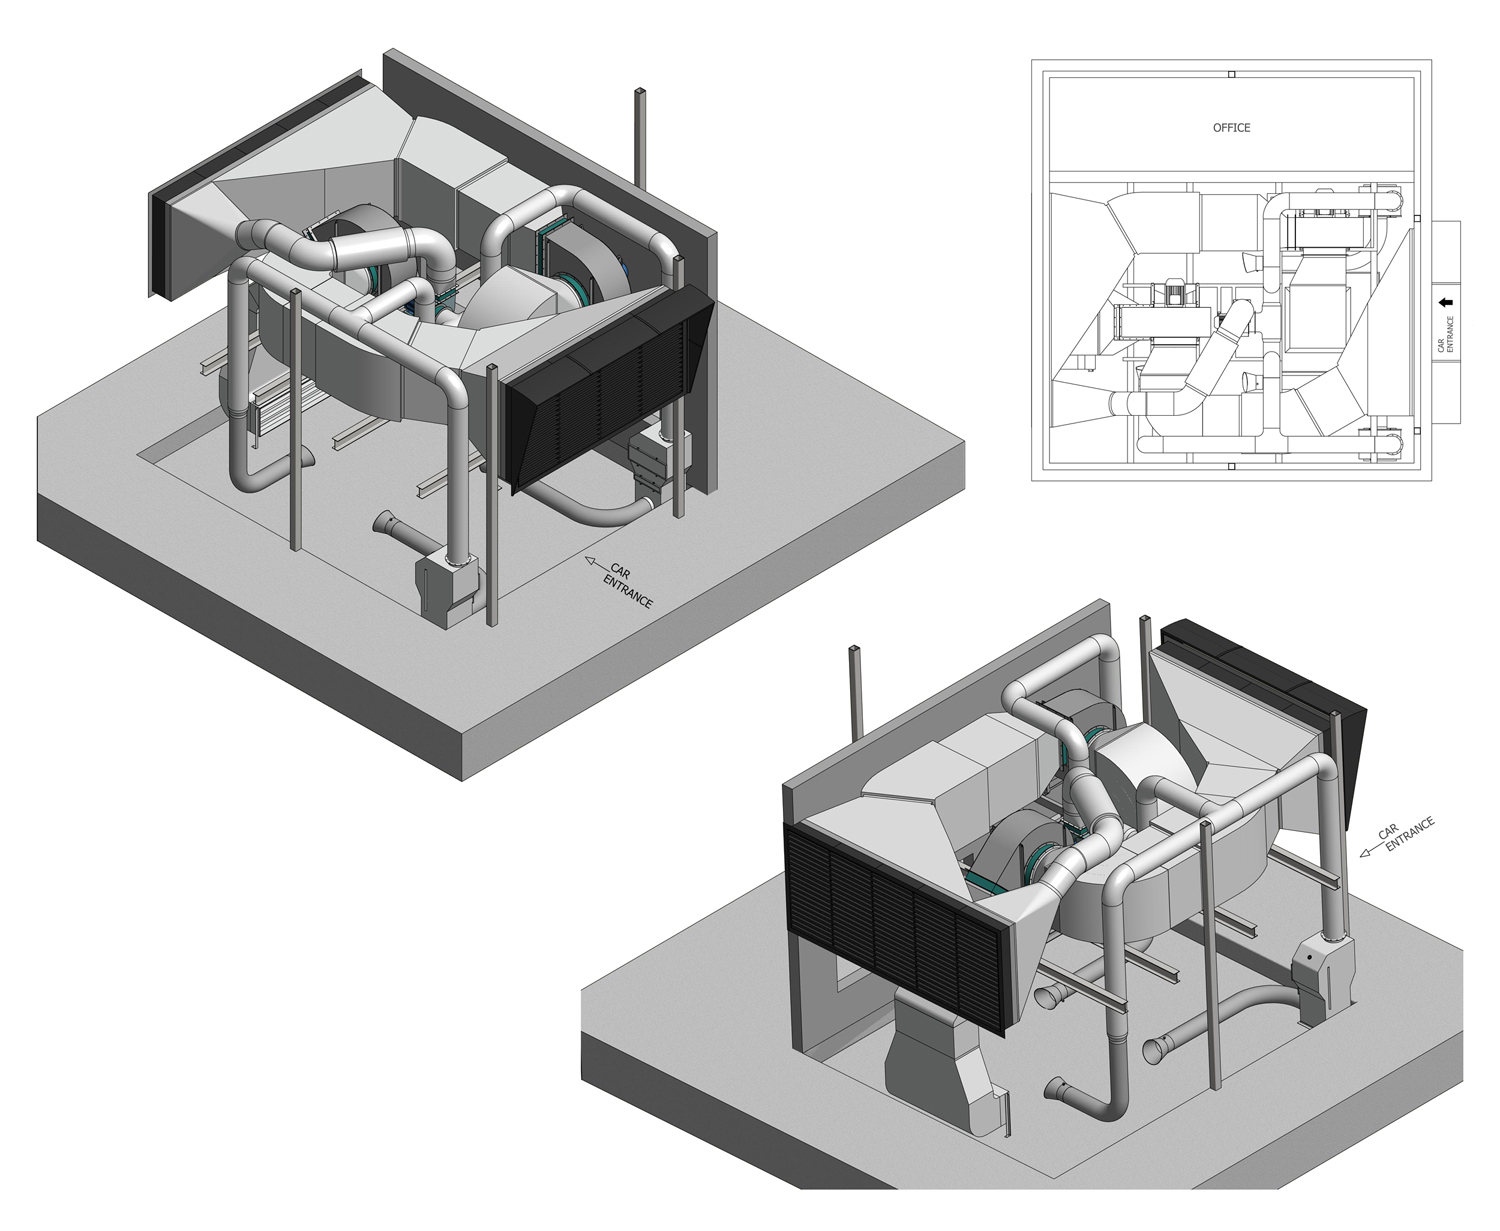 dyno-cell-air-system-3d-views.jpg